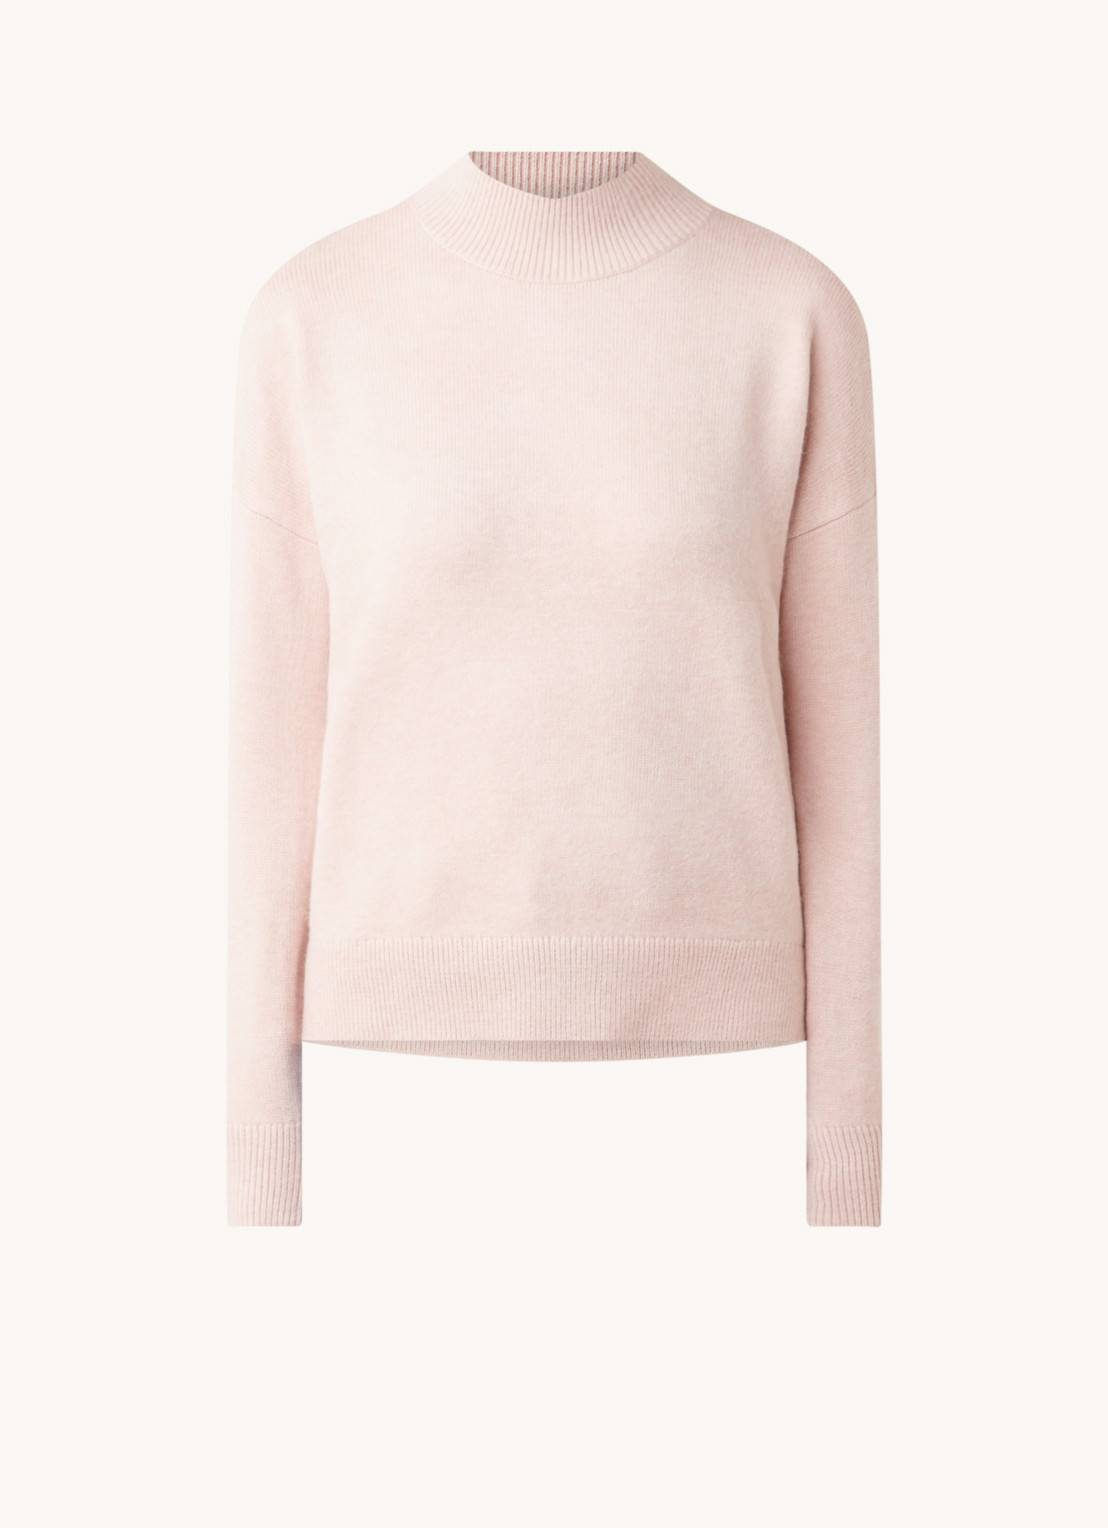 forever new Pull en maille fine Riley avec col roulé bas - Rose clair